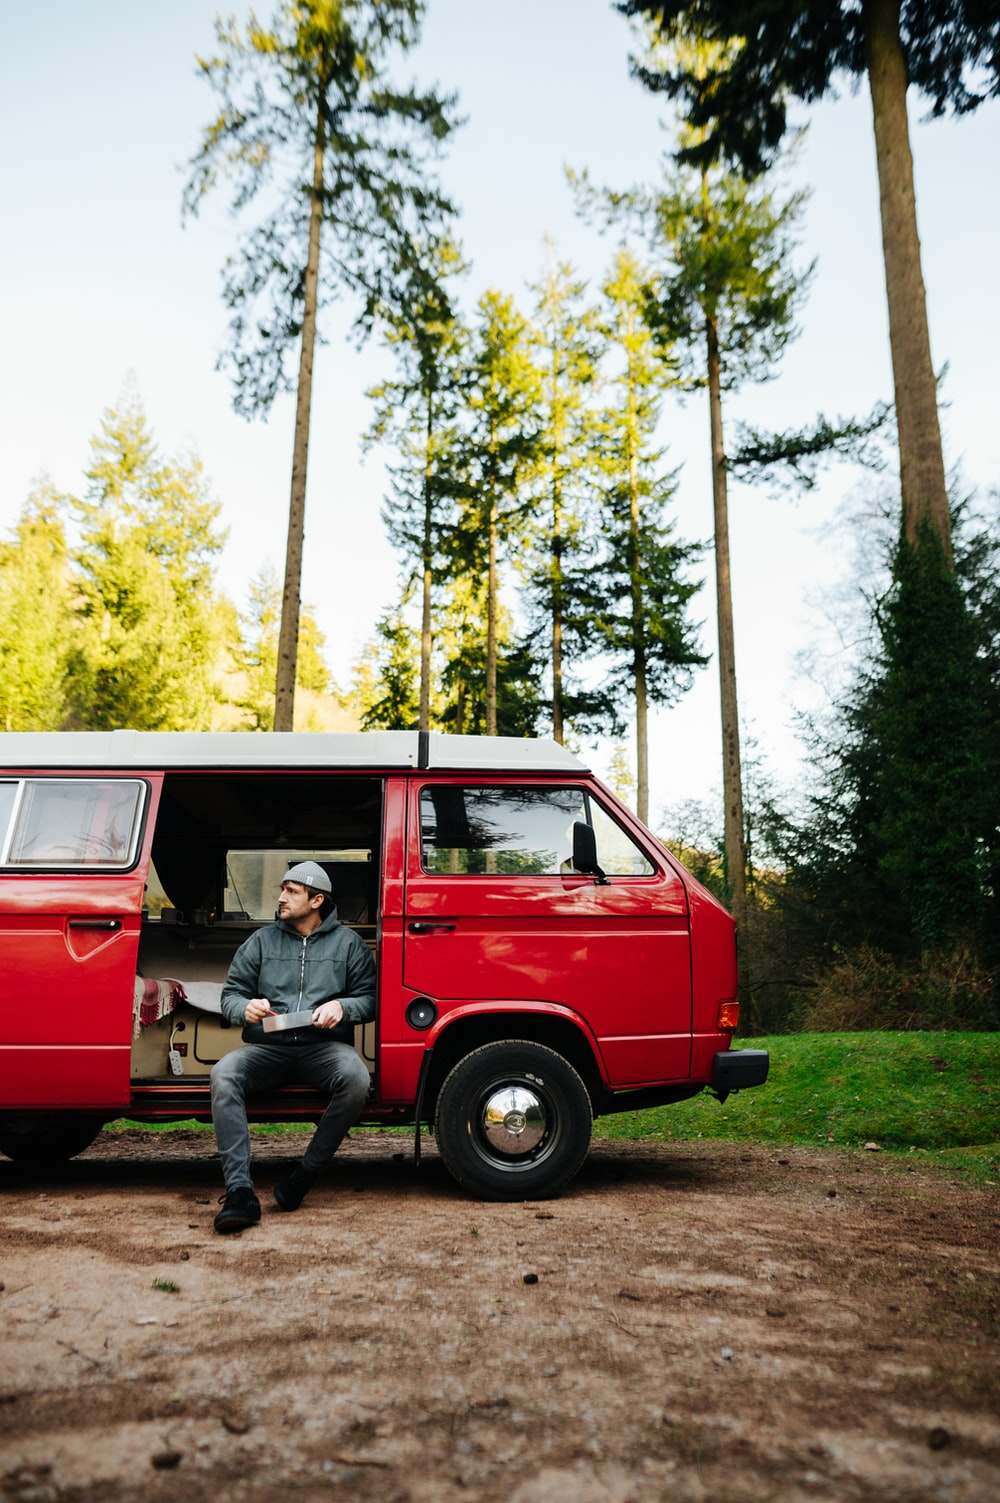 man in blue shirt sitting on red van